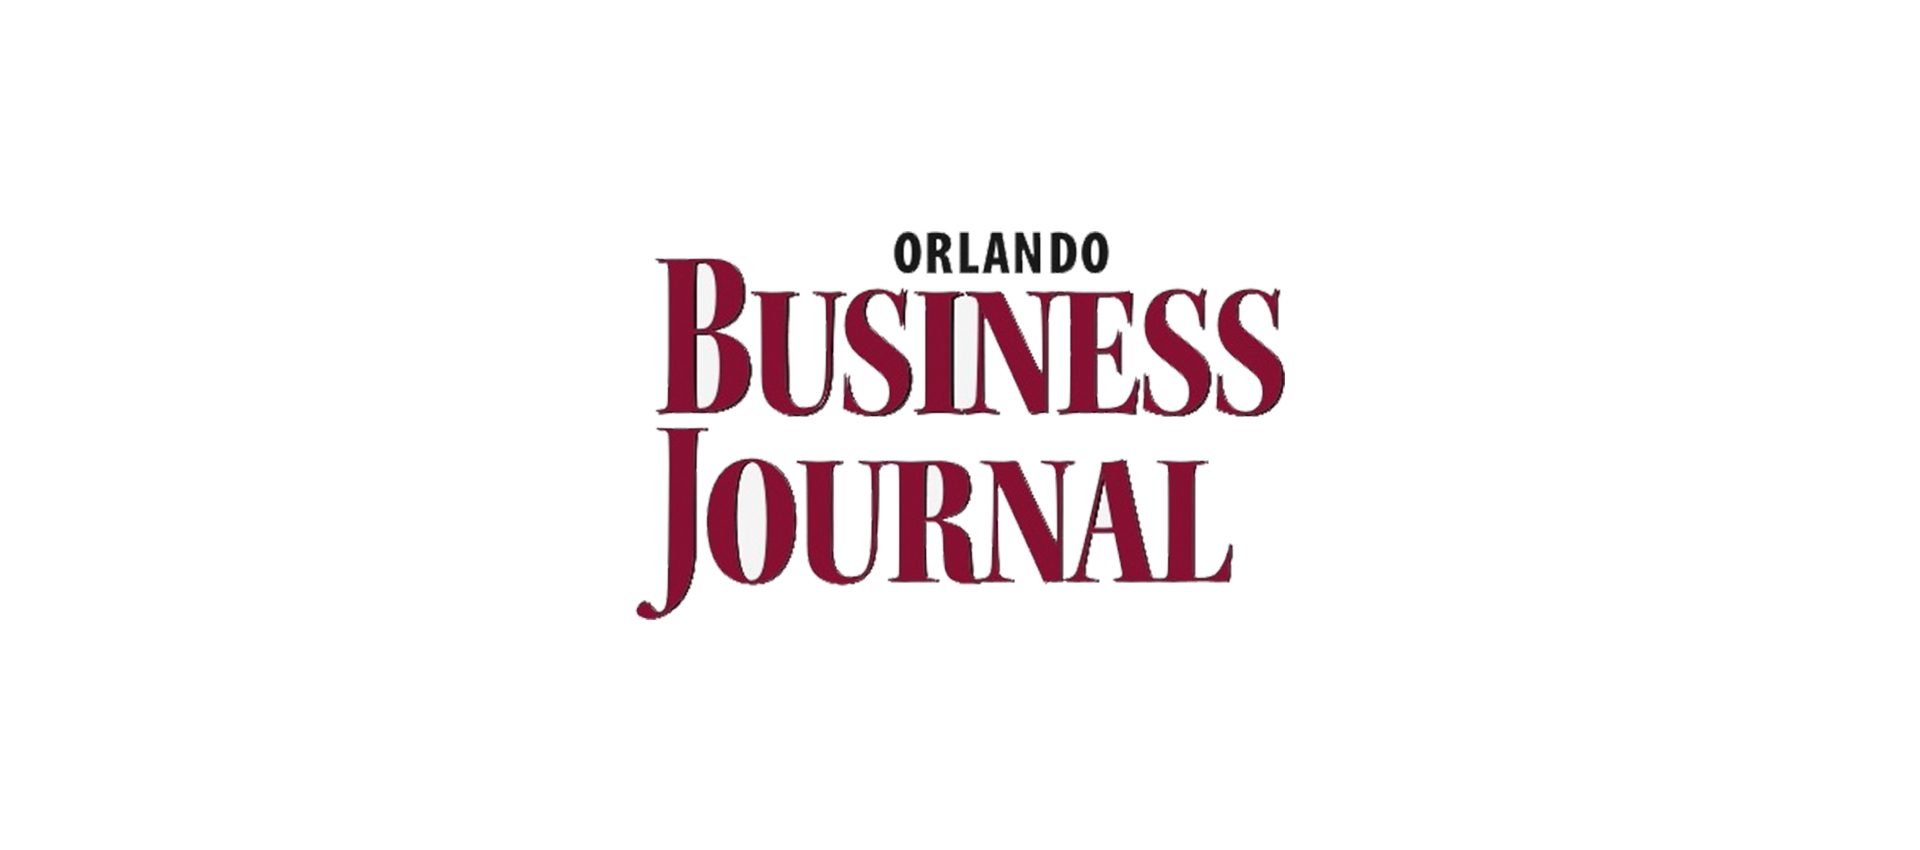 HSA Golden's Brownfields Expertise Highlighted in Orlando Business Journal